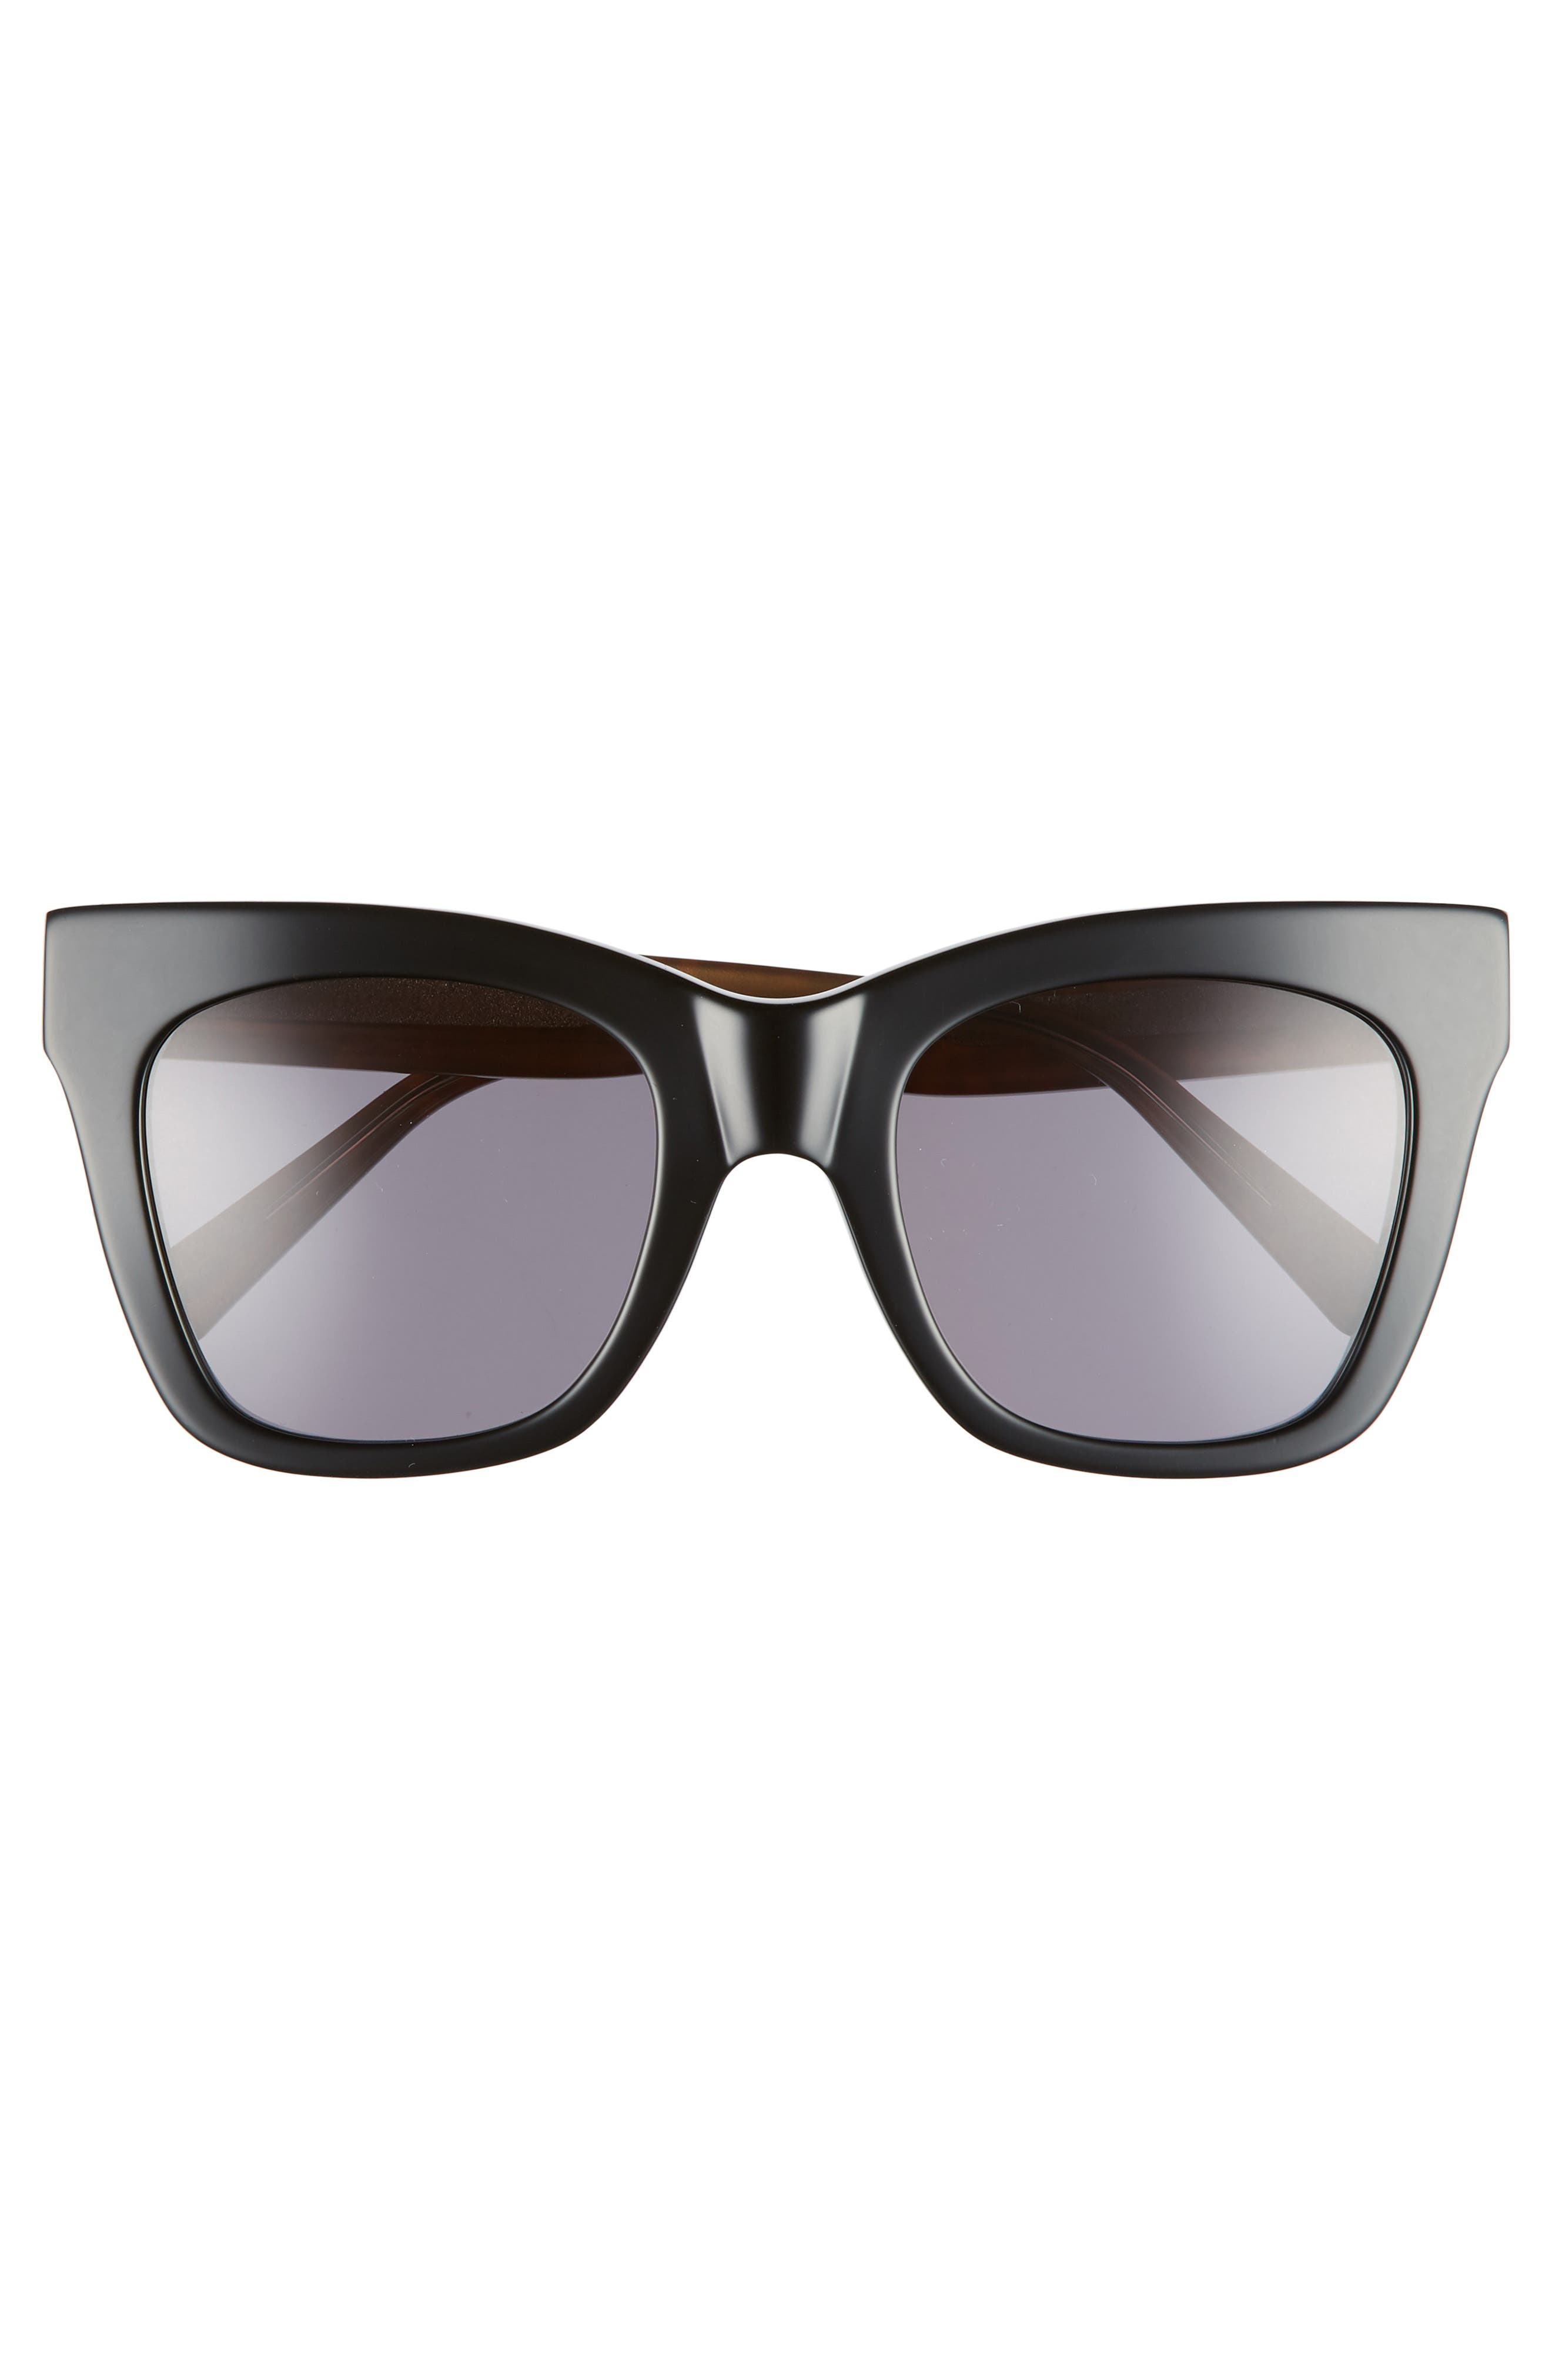 DBLANC,                             D'BLANC Beach Vida 52mm Sunglasses,                             Alternate thumbnail 3, color,                             BLACK CHEETAH/ GREY